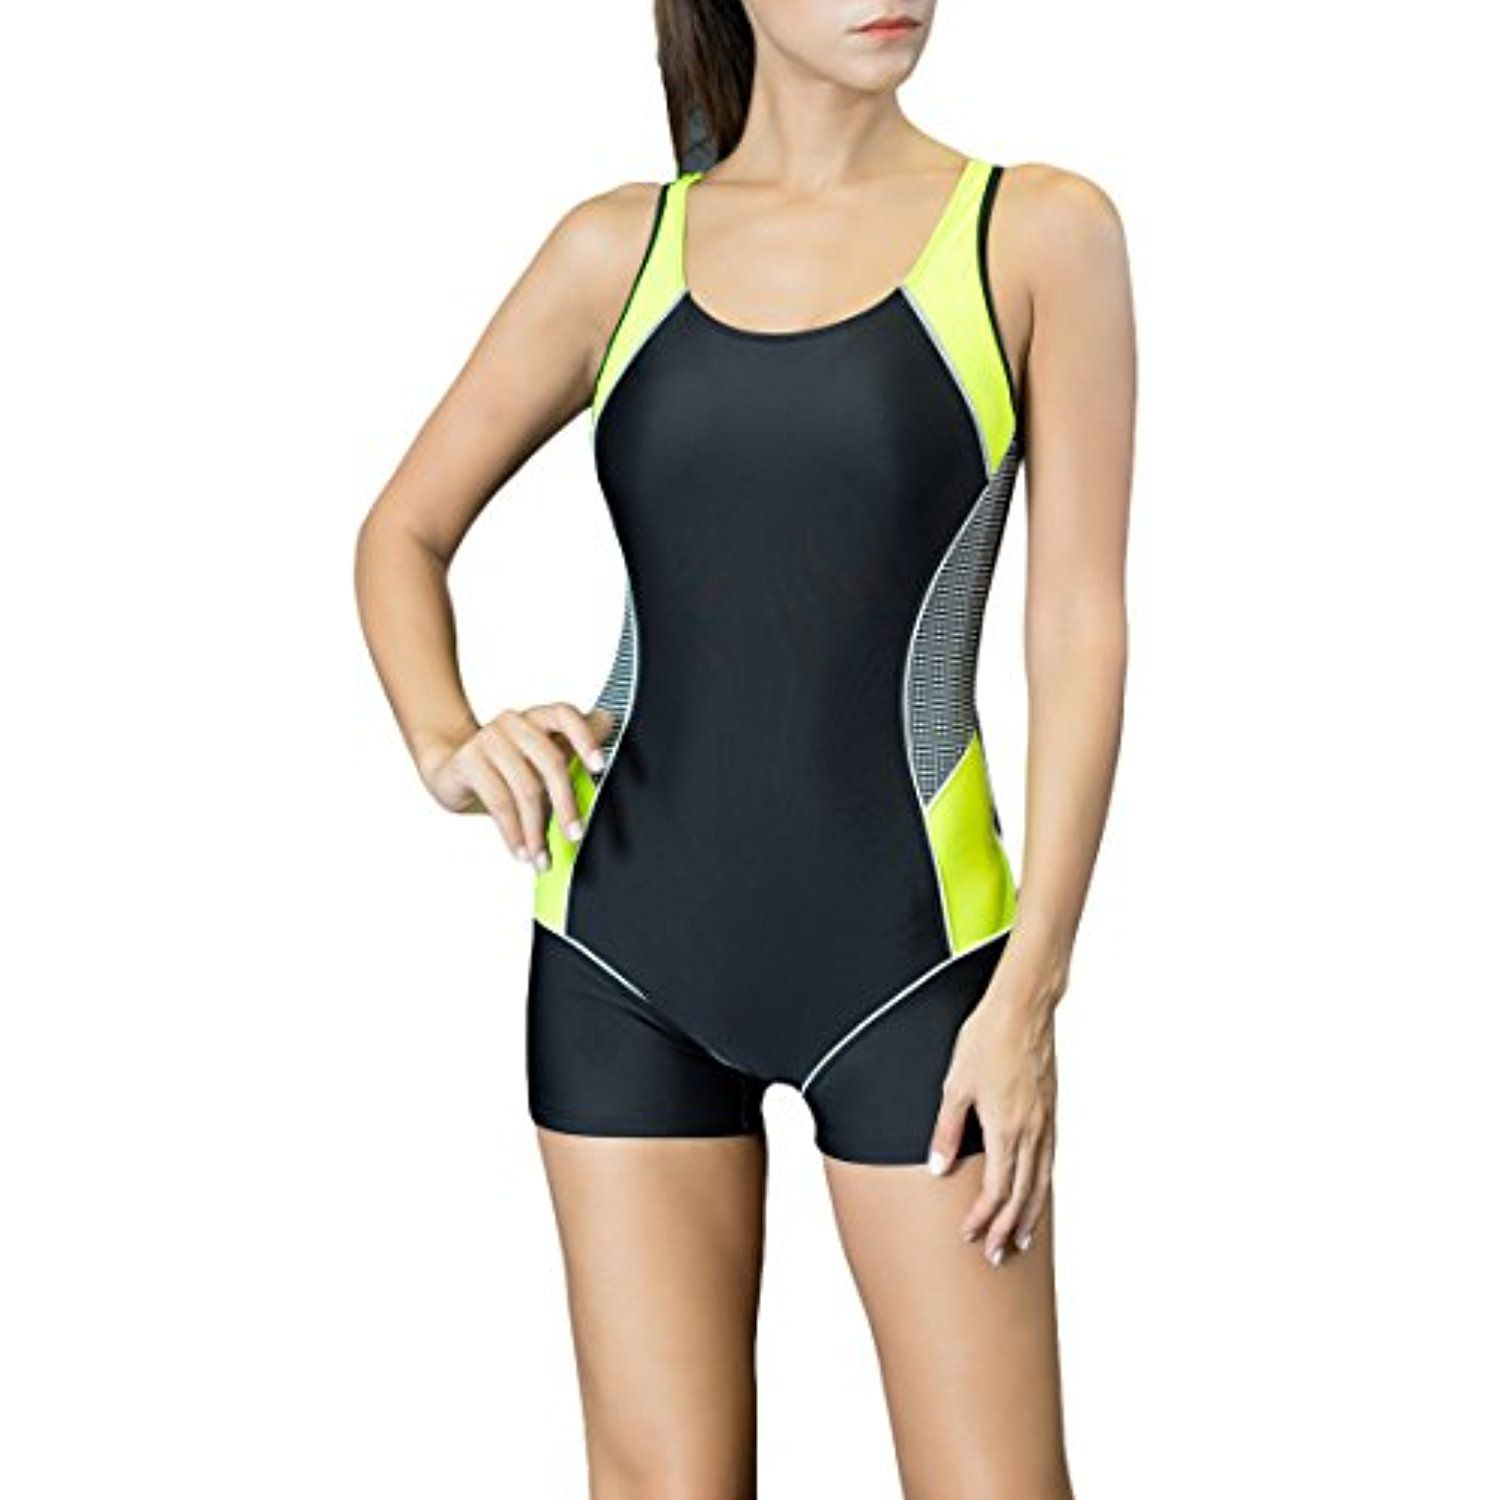 1ac0524946 Spring fever Women's One Piece Swimsuits Boyleg Sports Swimwear *** Be sure  to check out this awesome product. (This is an affiliate link) #Swimwear